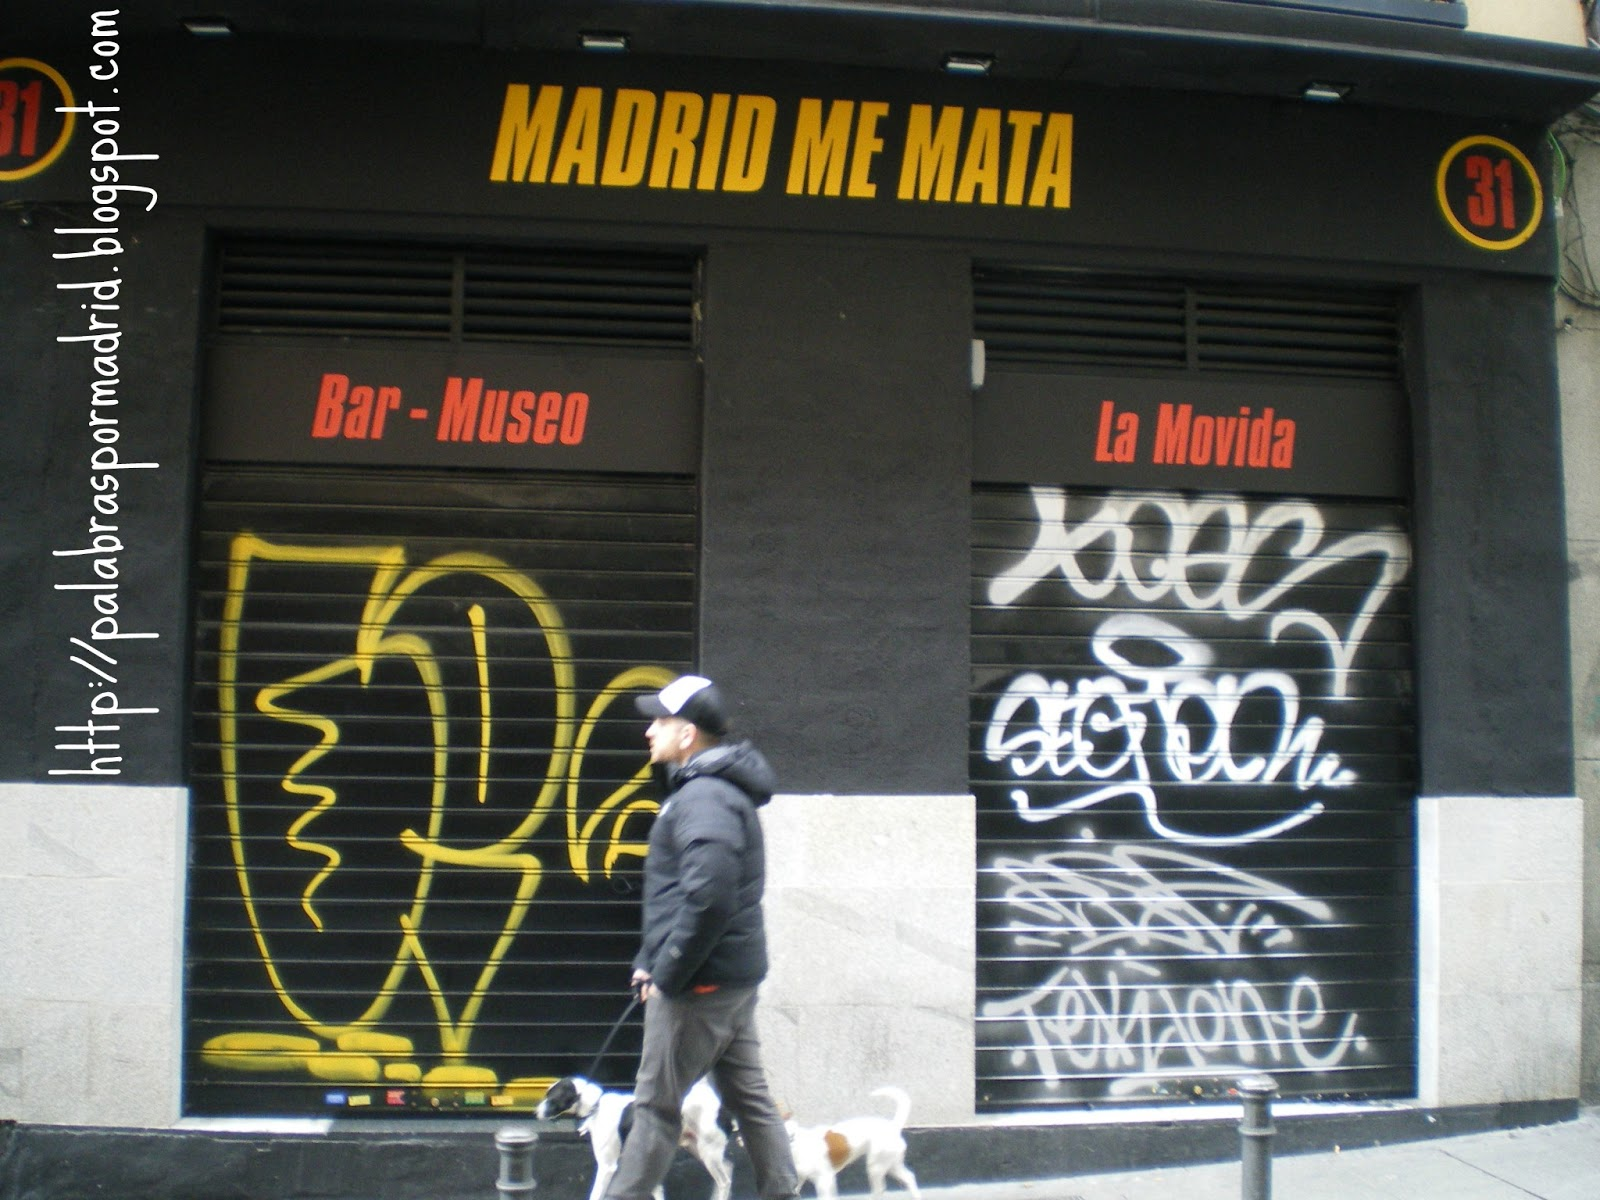 madrid me mata